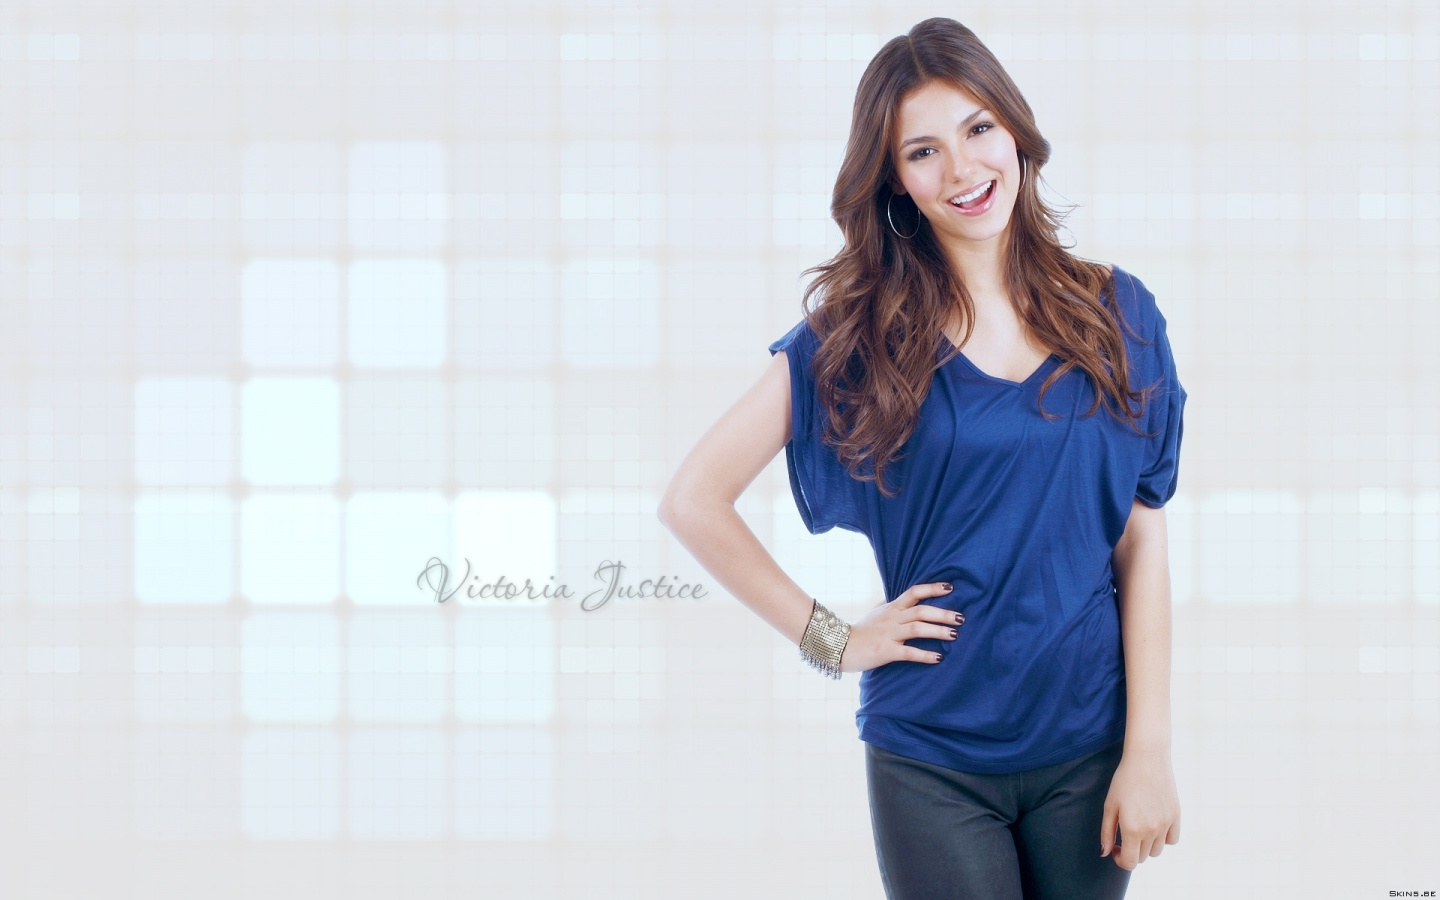 1440x900 Victoria Justice desktop PC and Mac wallpaper 1440x900